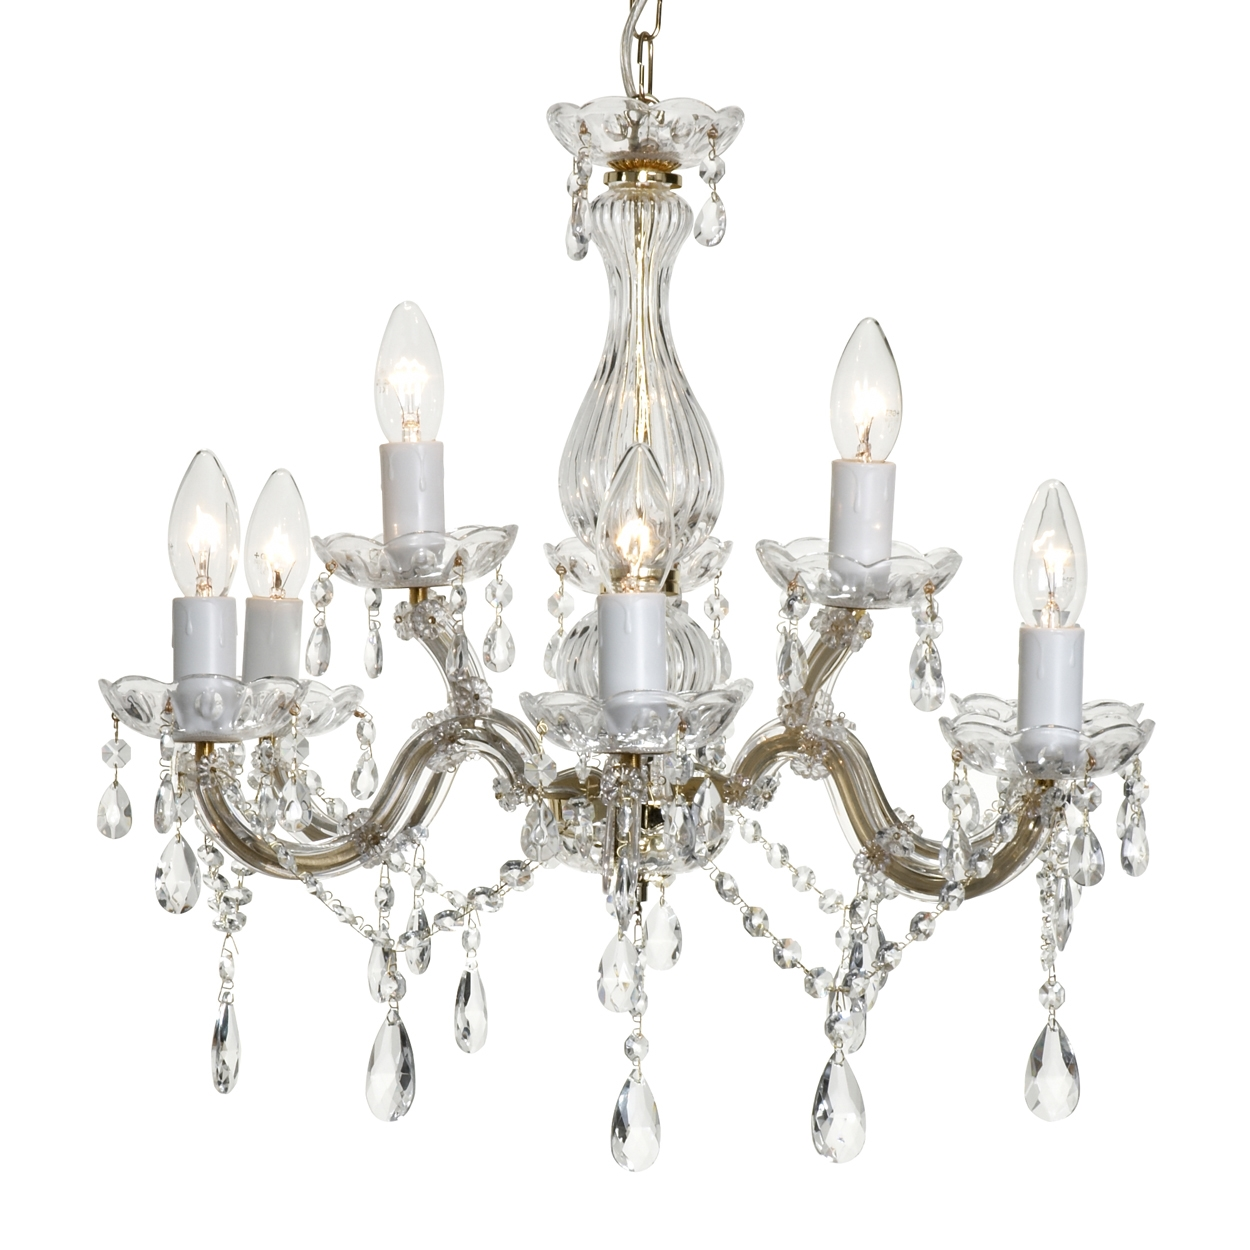 Crystal Chandelier Home Design Ideas Regarding Crystal Gold Chandelier (#6 of 12)